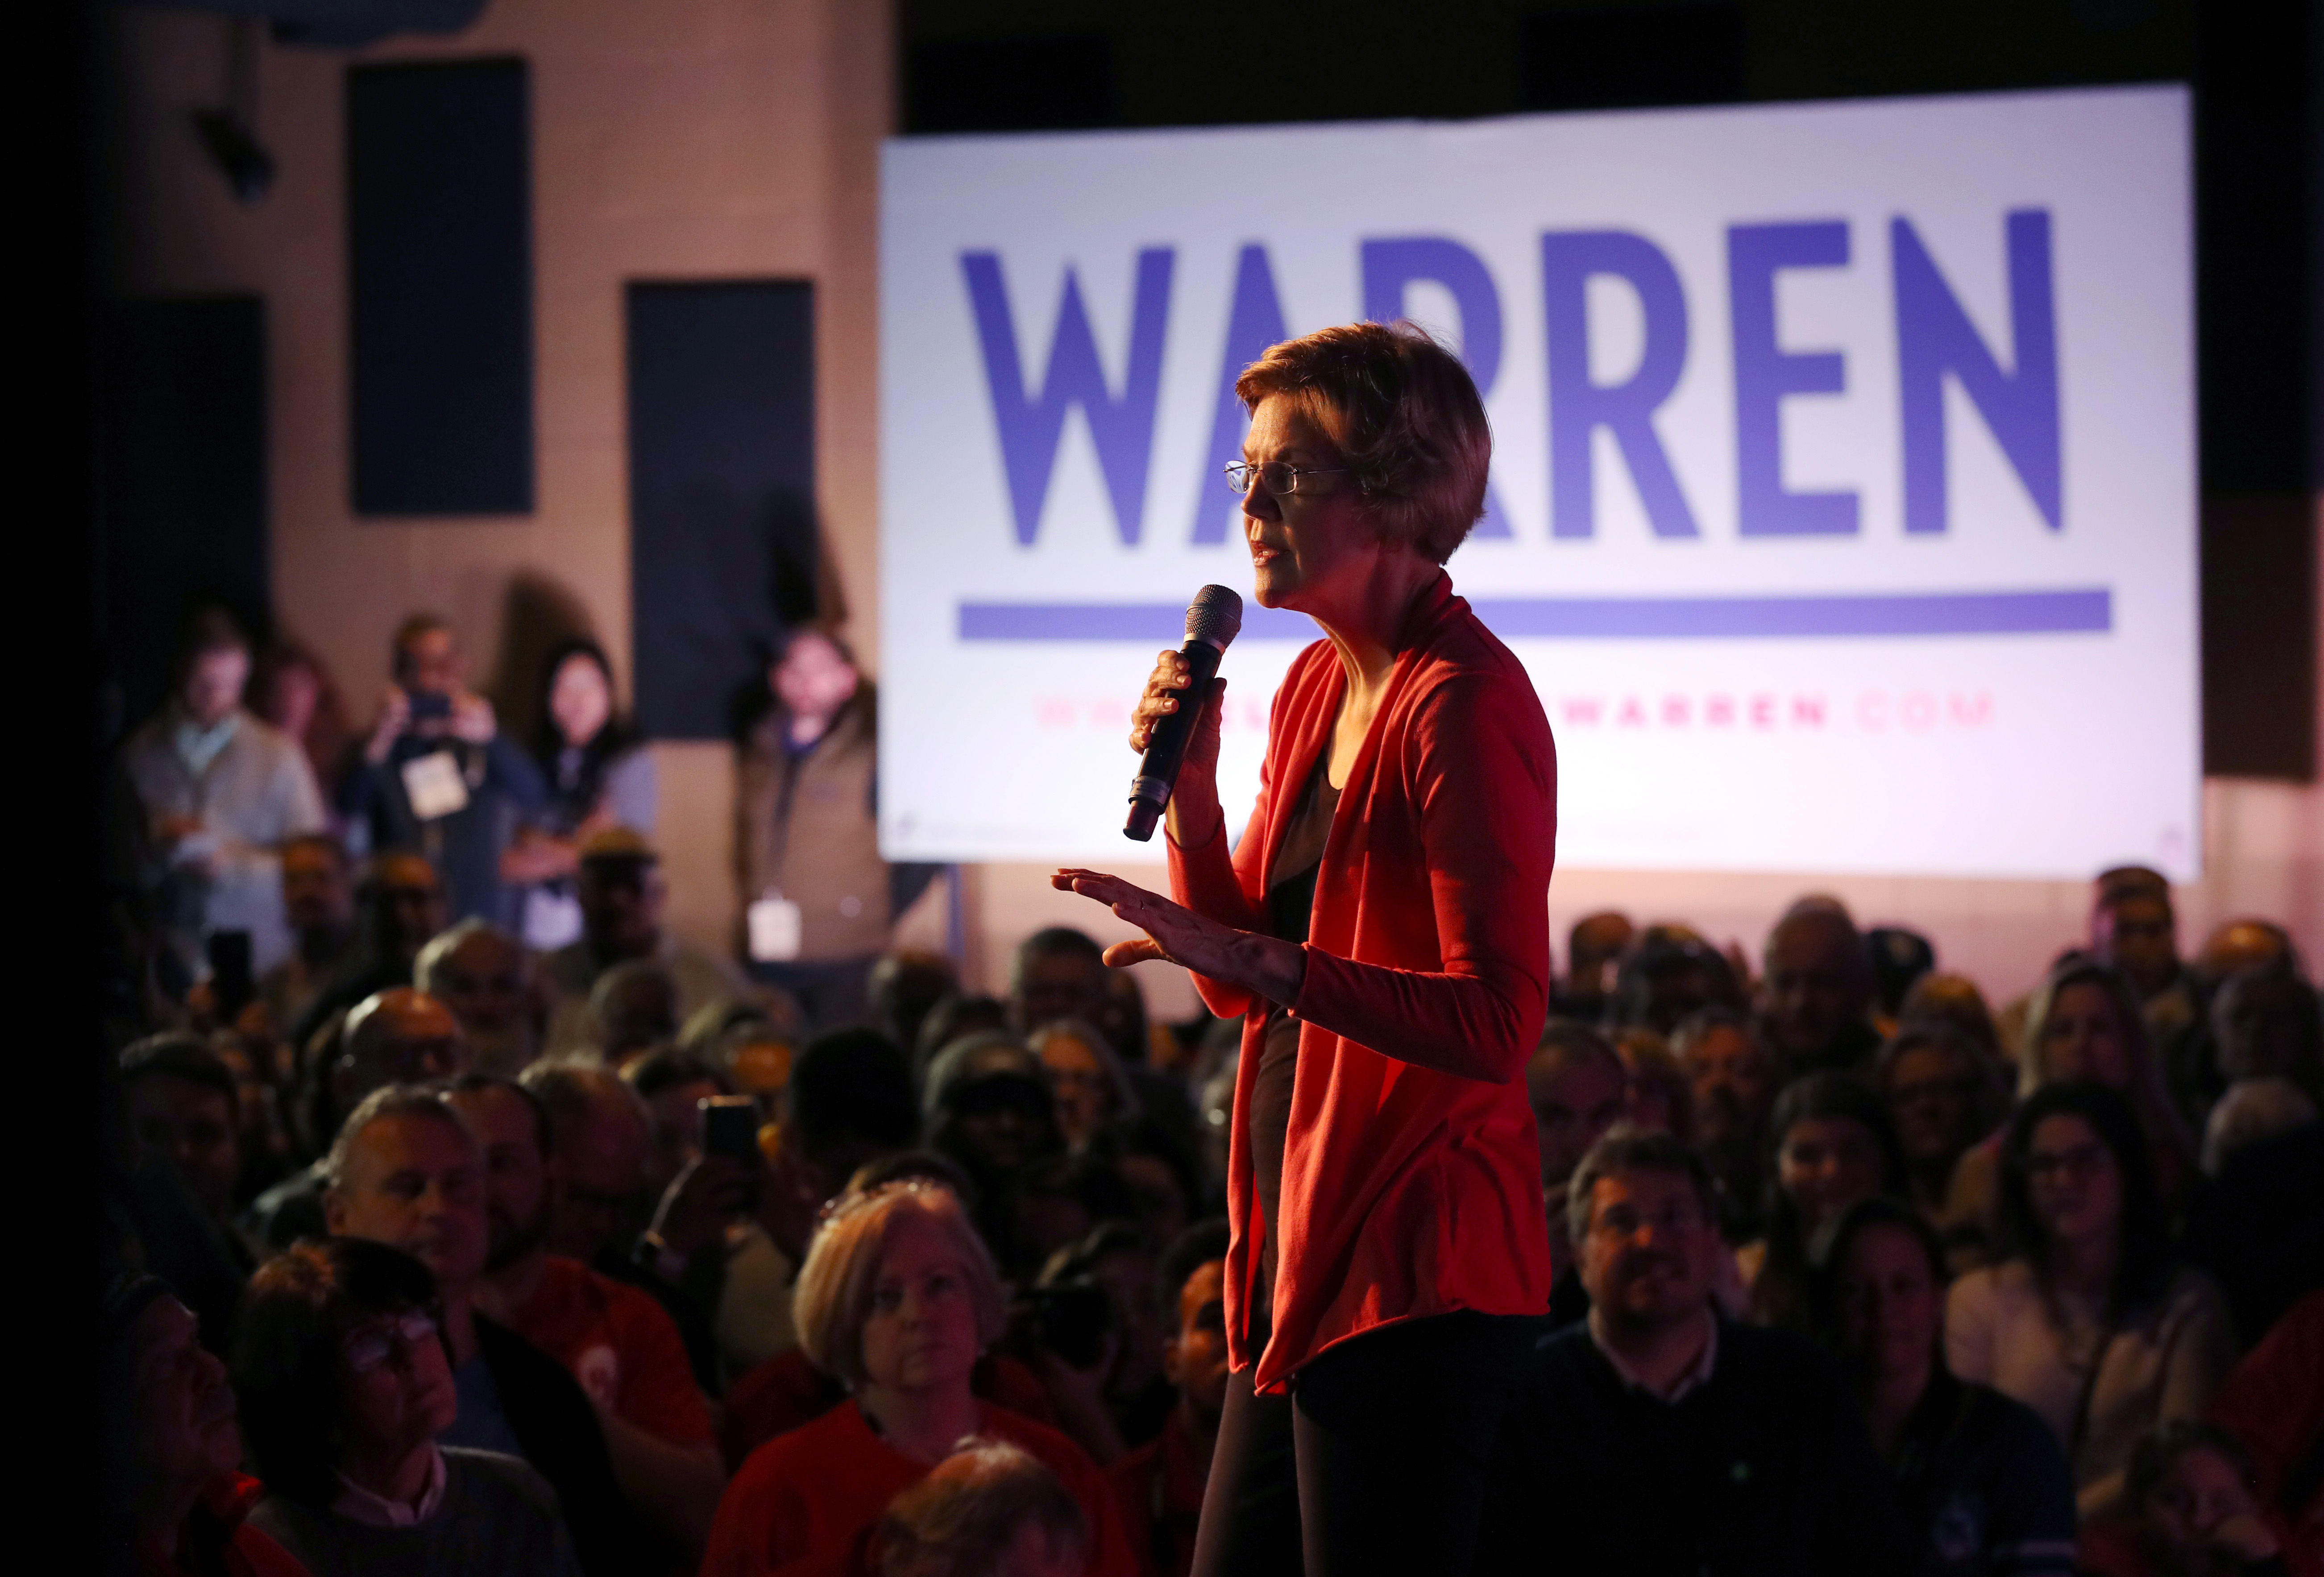 Warren's campaign is just the latest to struggle with diversity